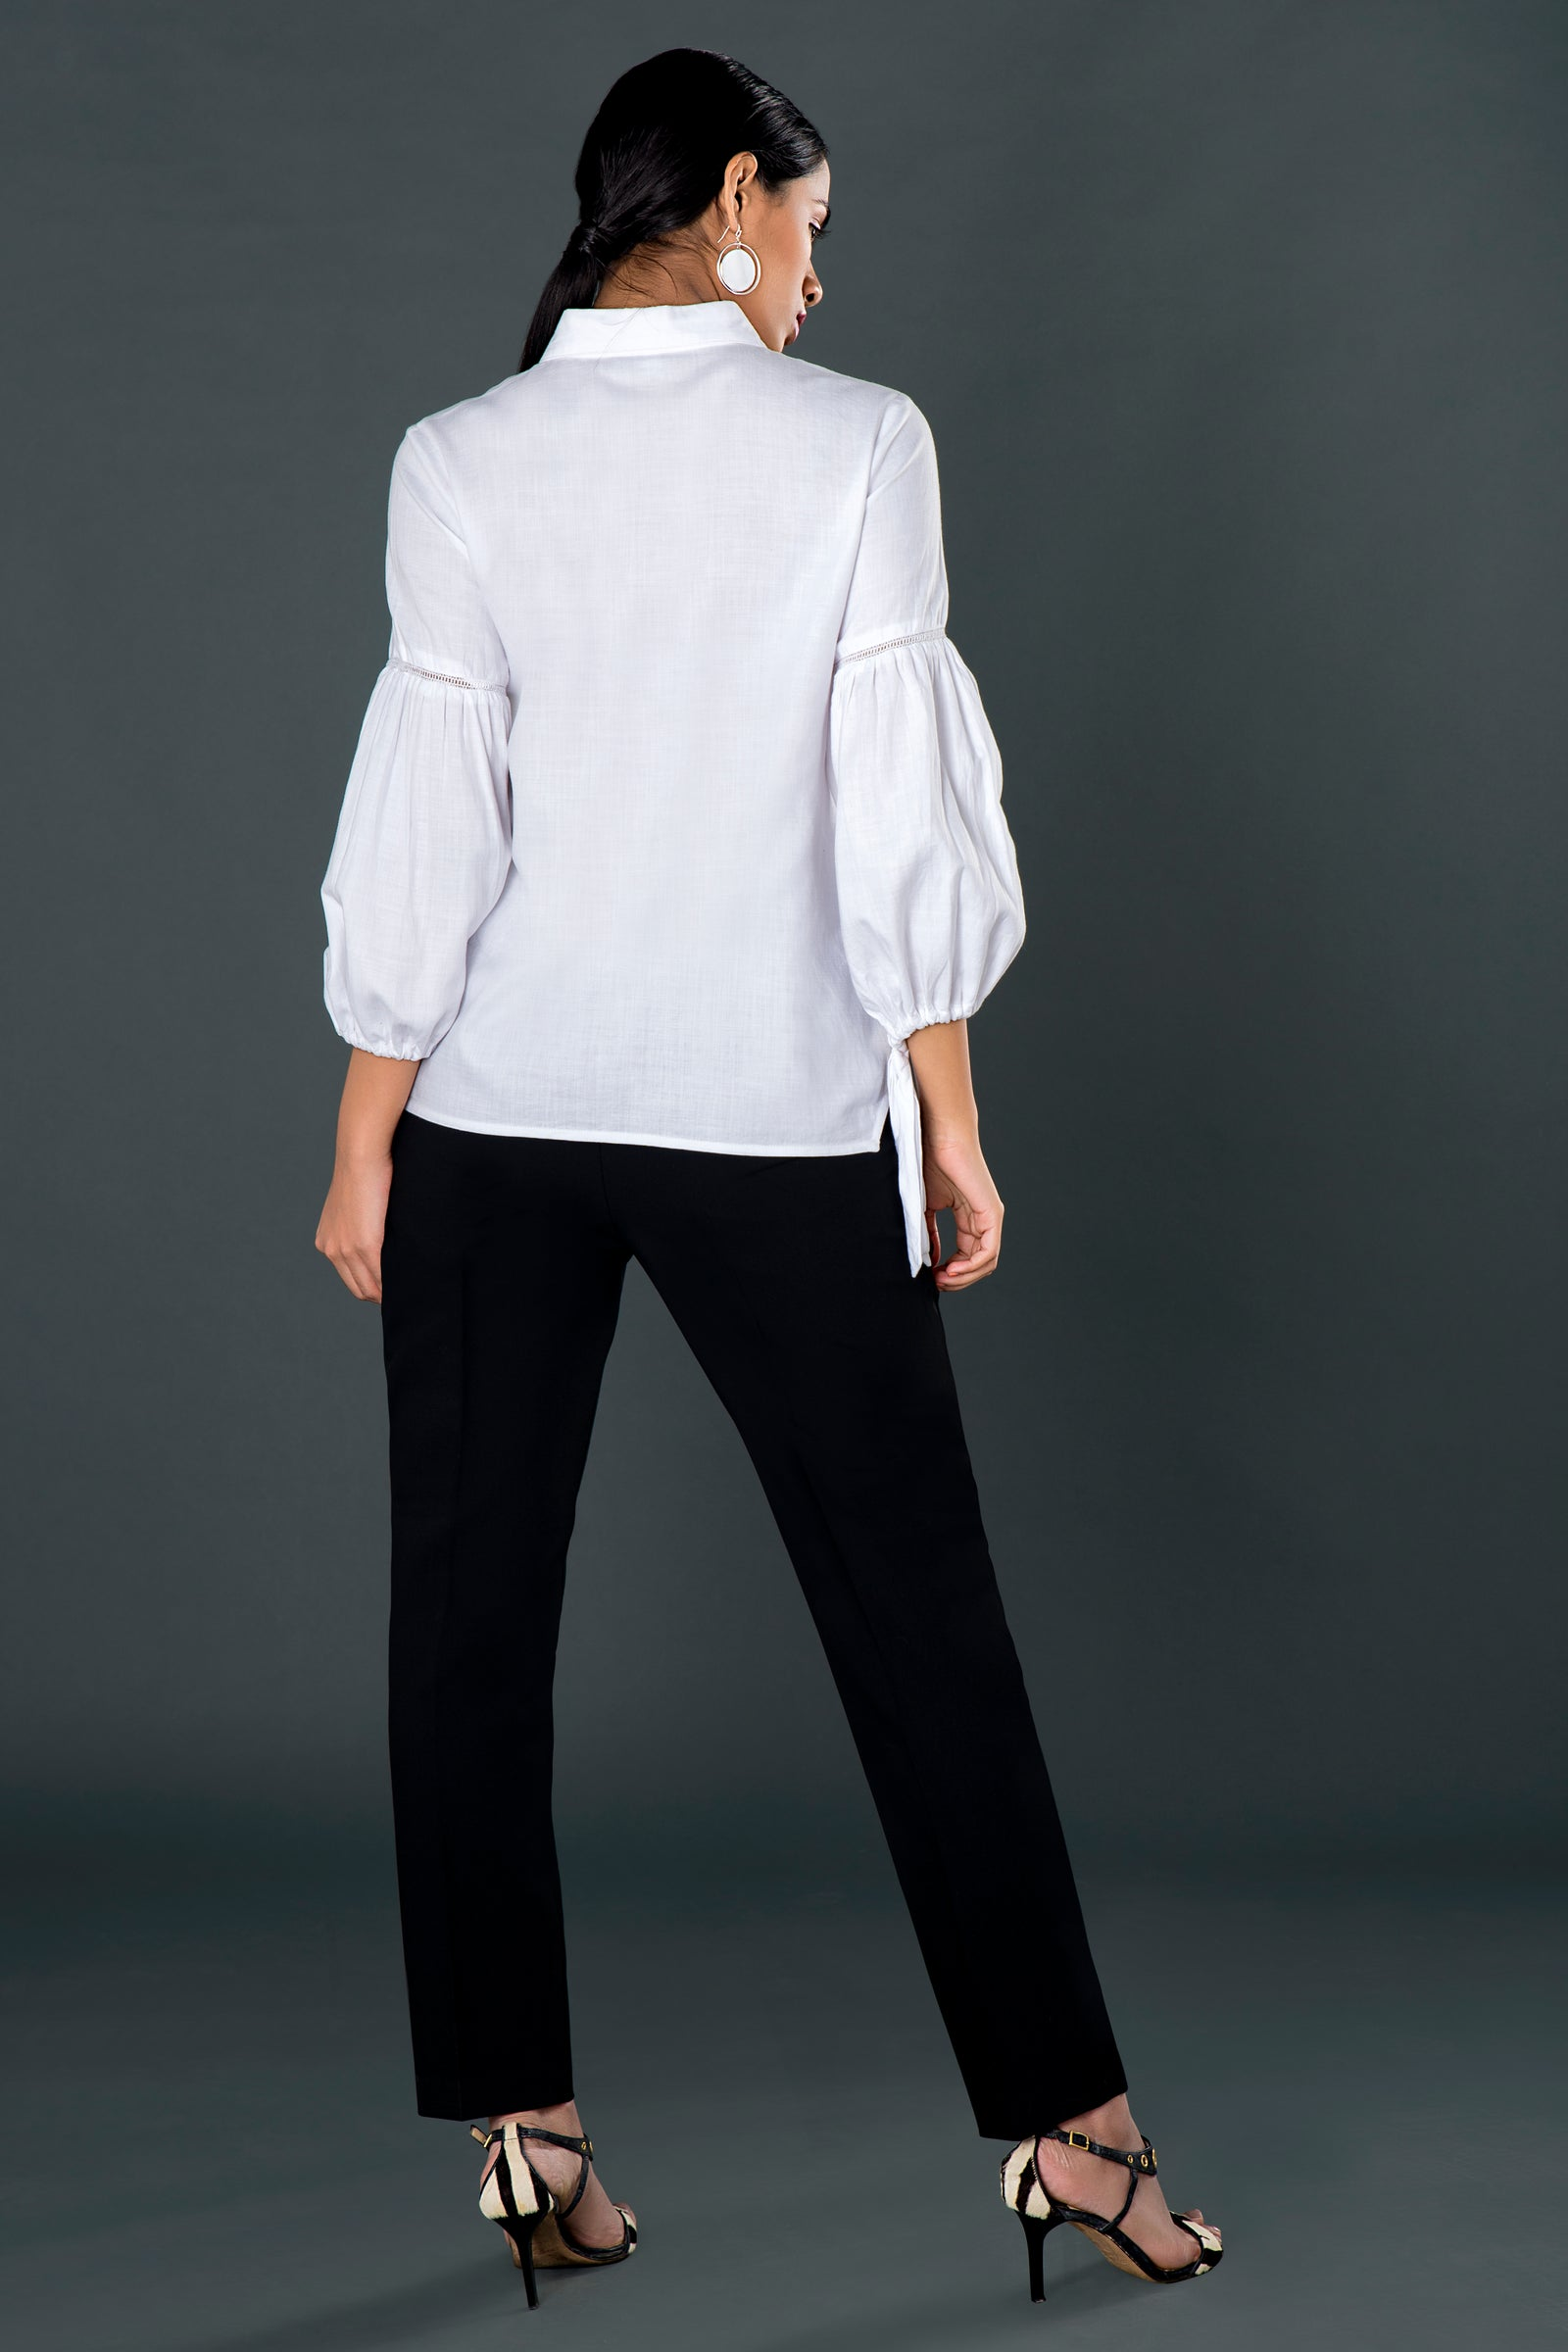 Tie-up White Shirt